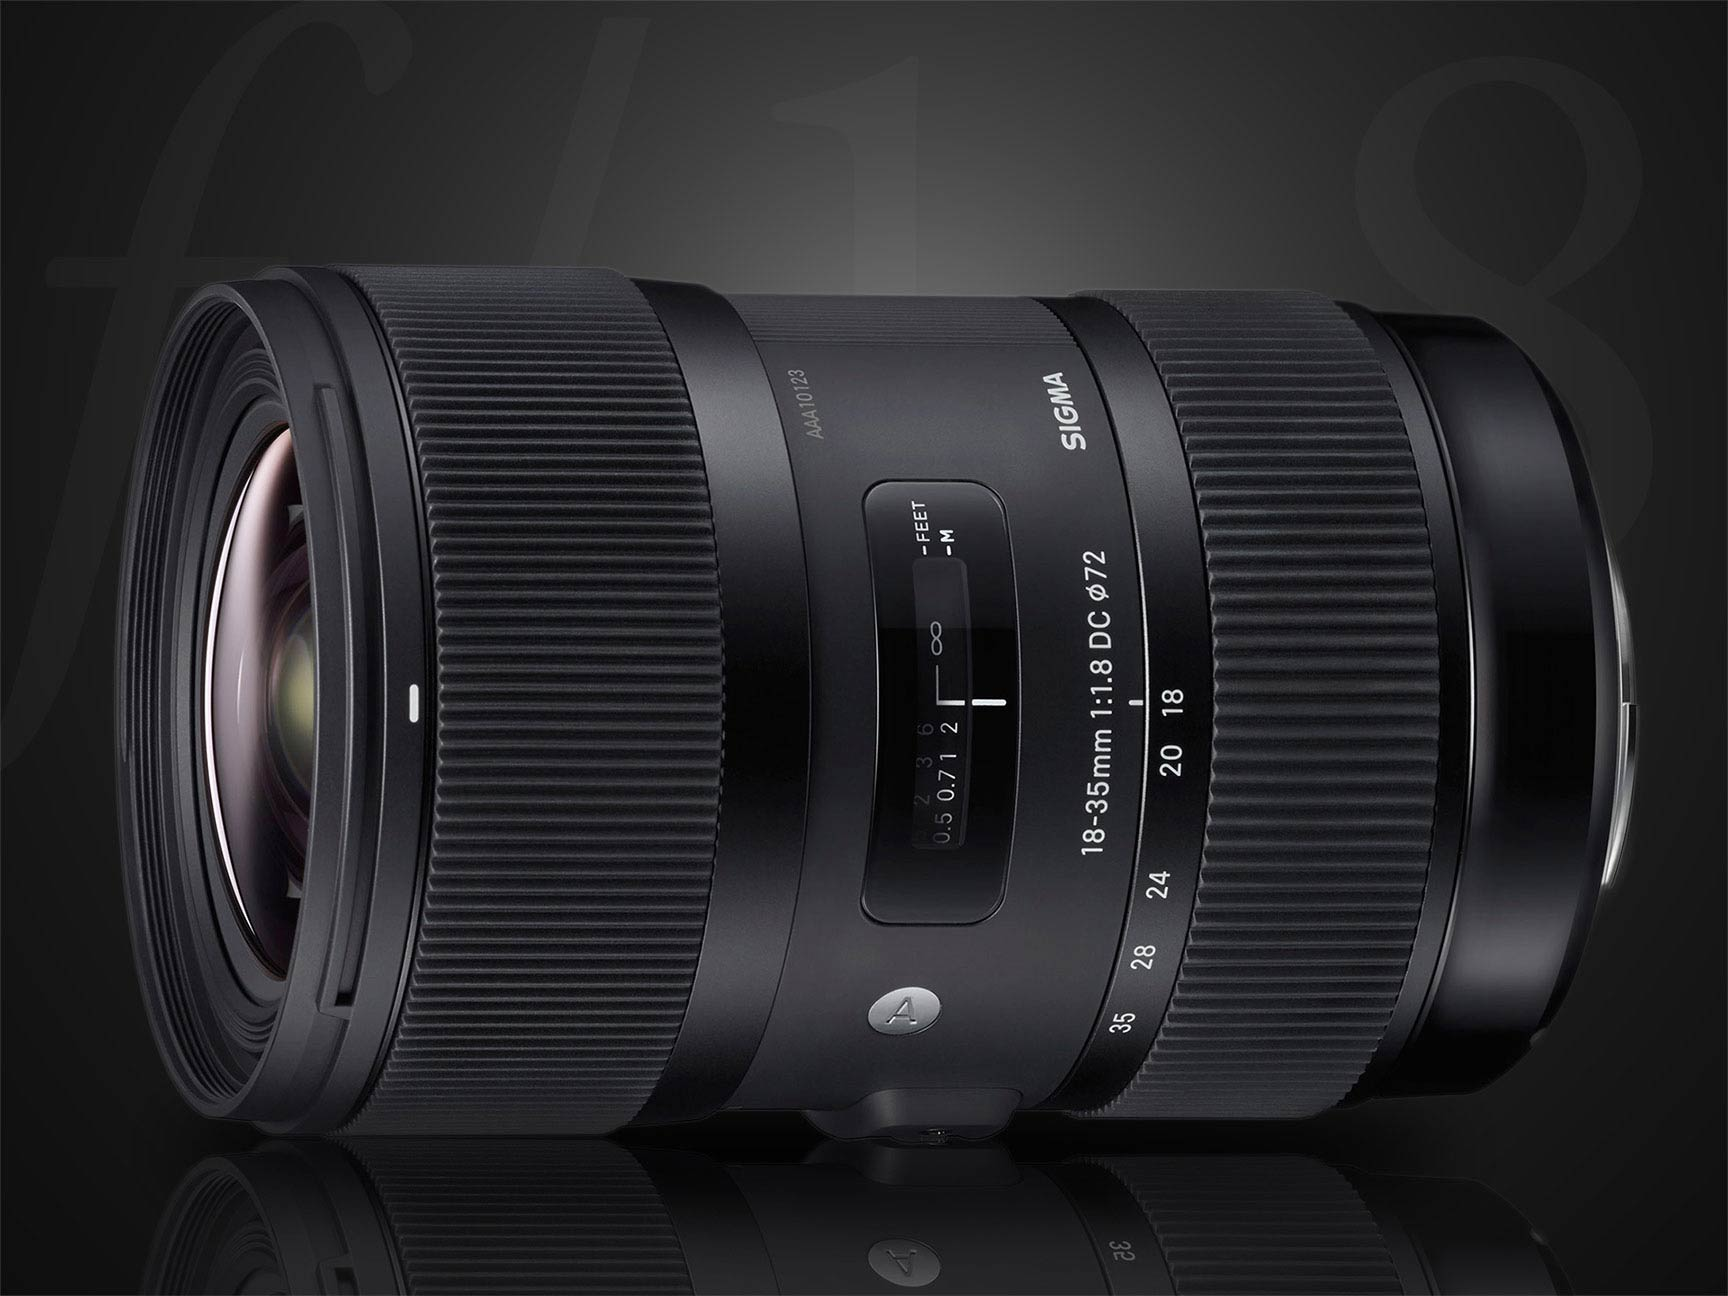 Sigma Announces 18-35mm f/1.8 DC HSM Lens : First f/1.8 Zoom Lens ...